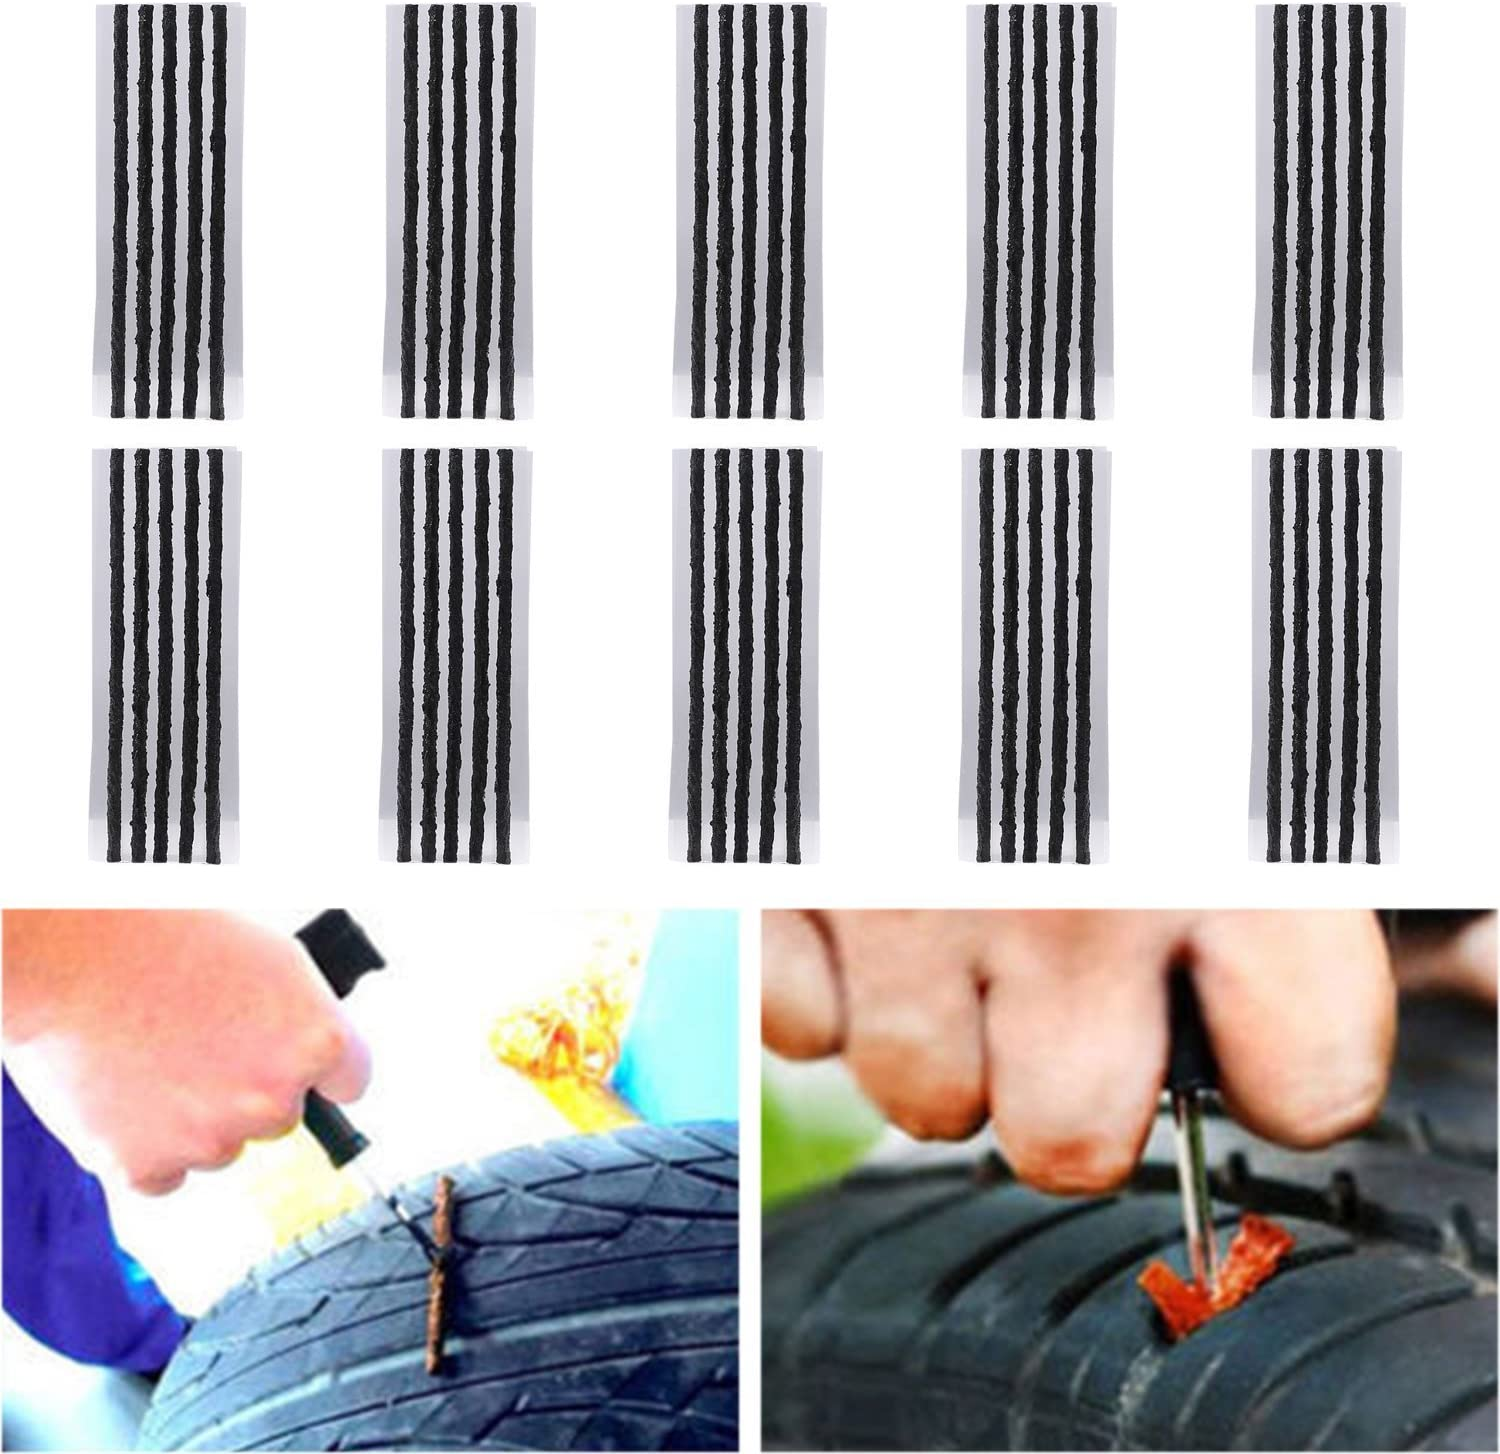 New sales TKOOFN Pack of 50 Tire Special price for a limited time Rep Strings Automotive Repair Tool